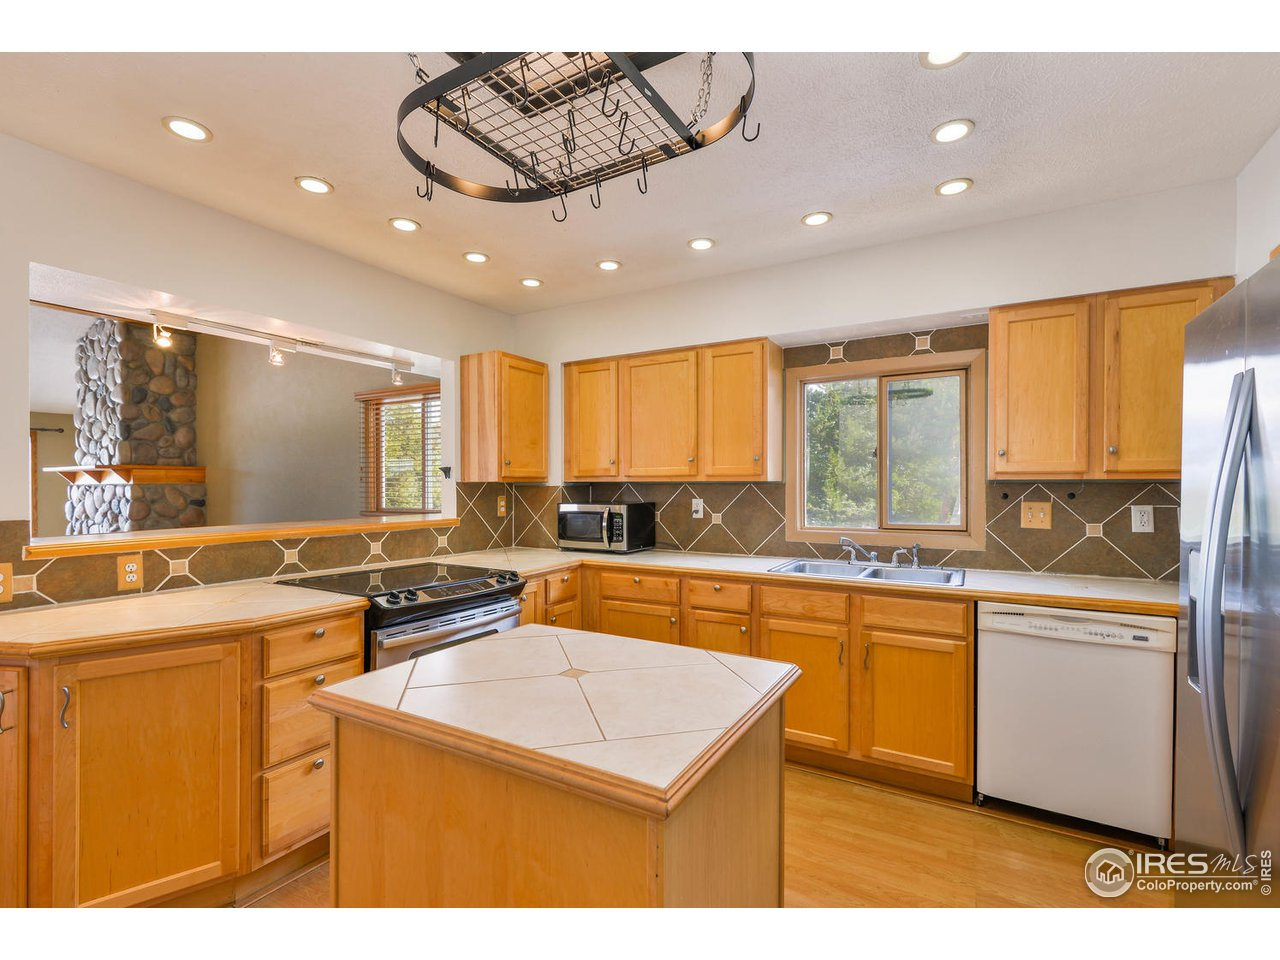 Kitchen with ample cabinets